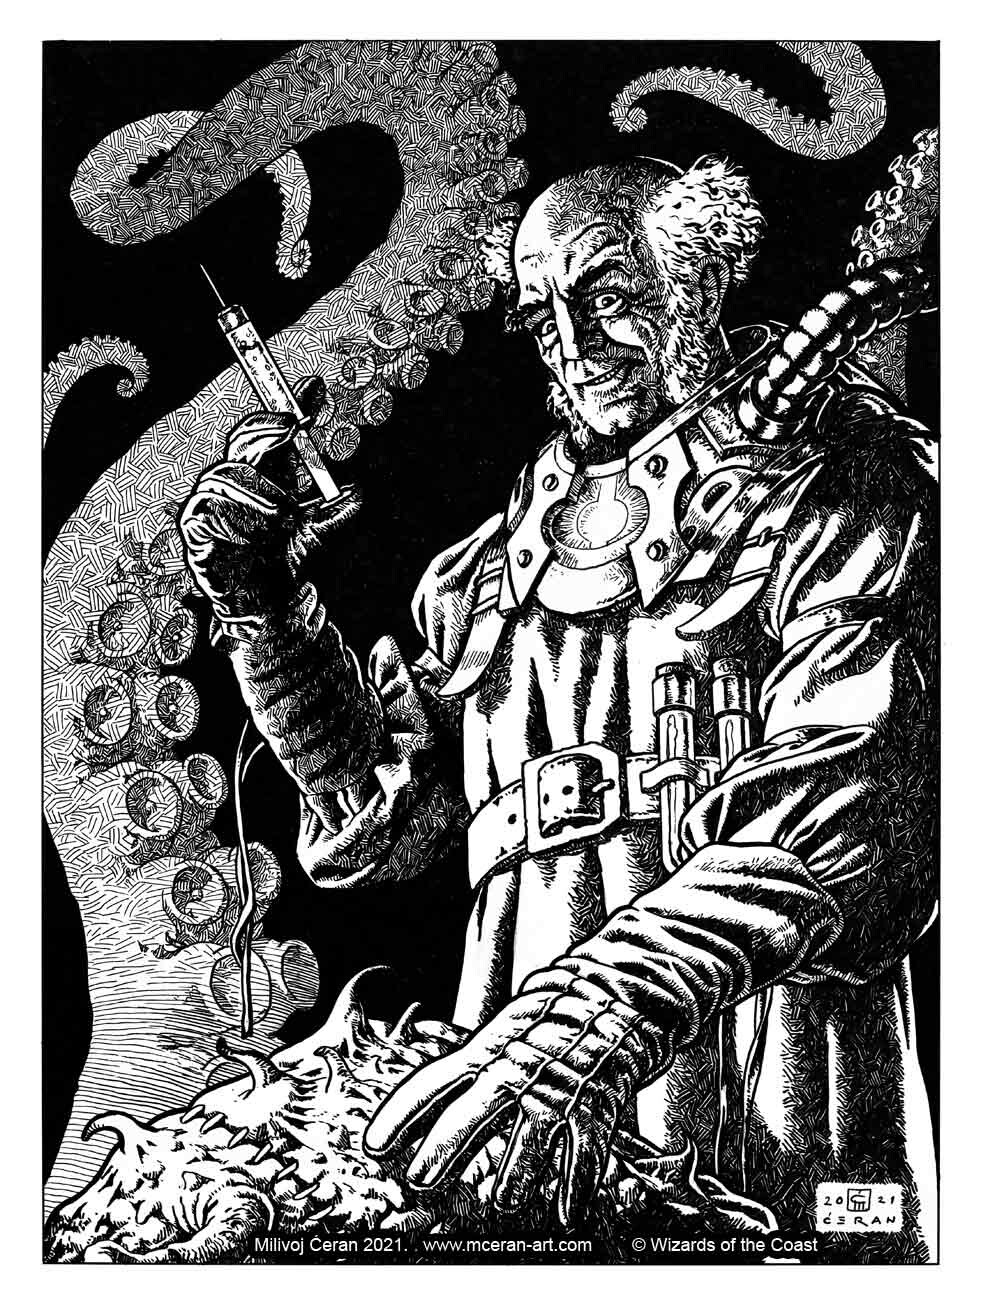 """""""Ludevic, Necrogenius"""" - variant card, Milivoj Ćeran 2021. - 40 x 29 cm cm (15,7 x 11,4 inches) - archival ink on paper (Fabriano 5, 300 gsm) - AD: Crystal Chang - Magic the Gathering, set: """"Innistrad: Midnight Hunt"""" - © Wizards of the Coast"""